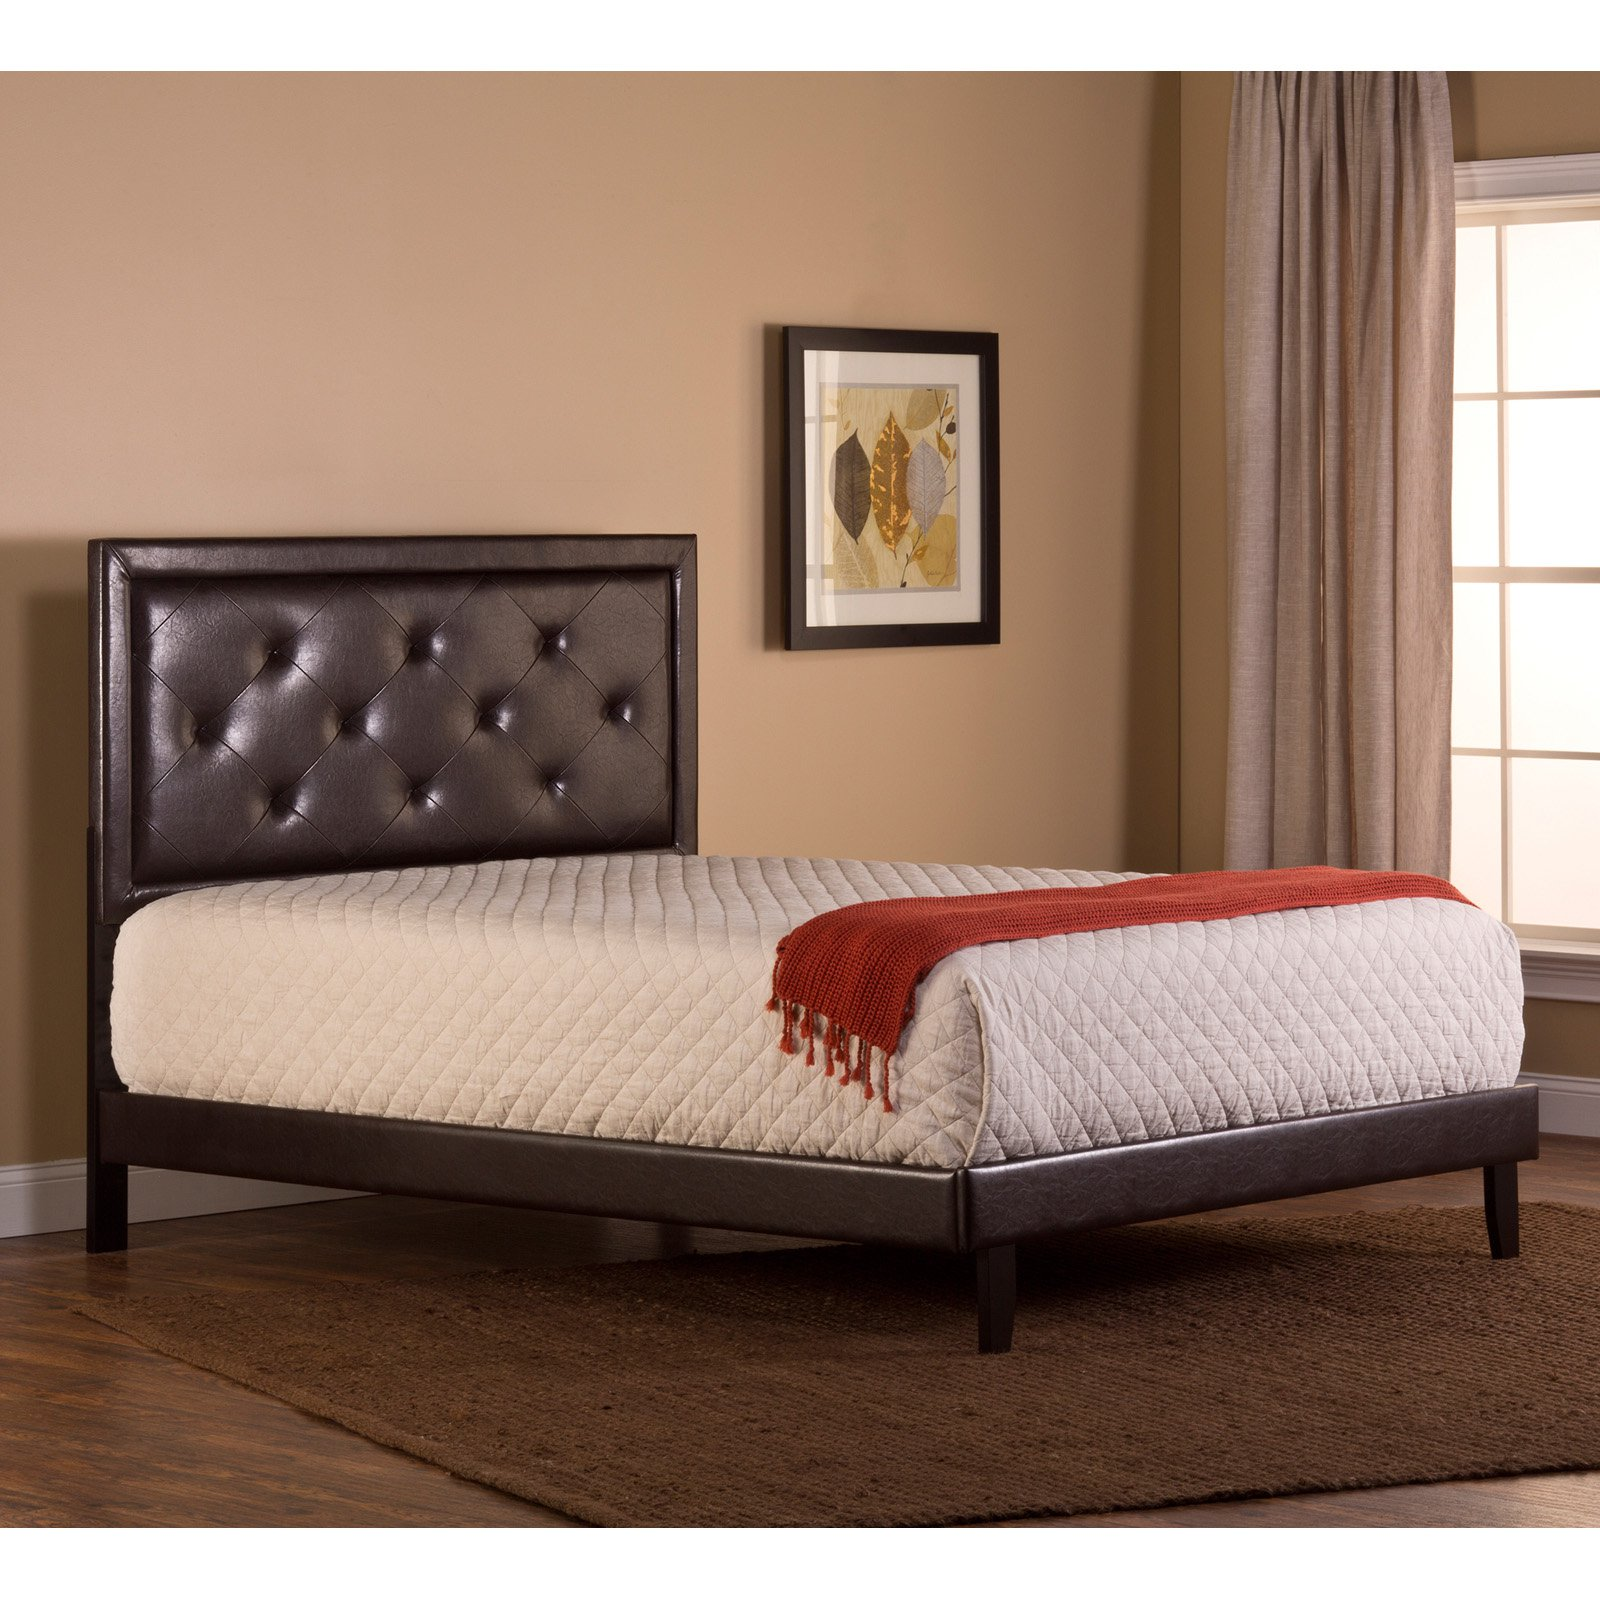 Hillsdale Furniture Becker Queen Headboard with Bedframe, Brown Faux Leather by Hillsdale